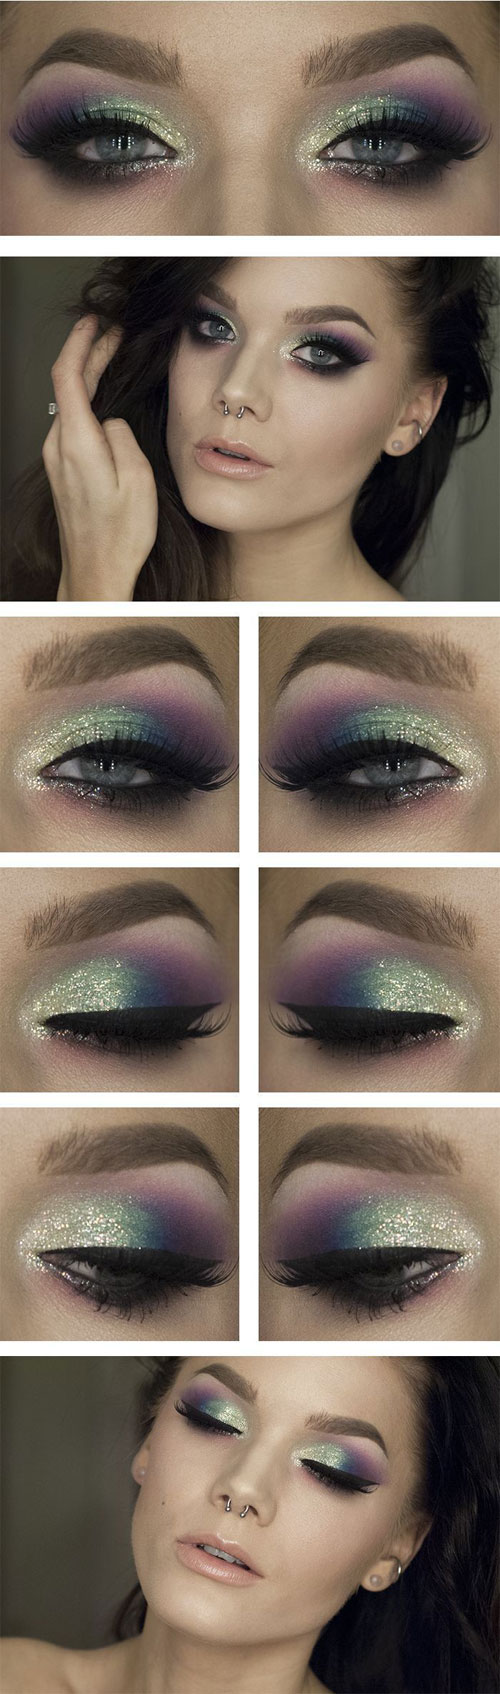 25-Spring-Makeup-Tutorial-2015-20